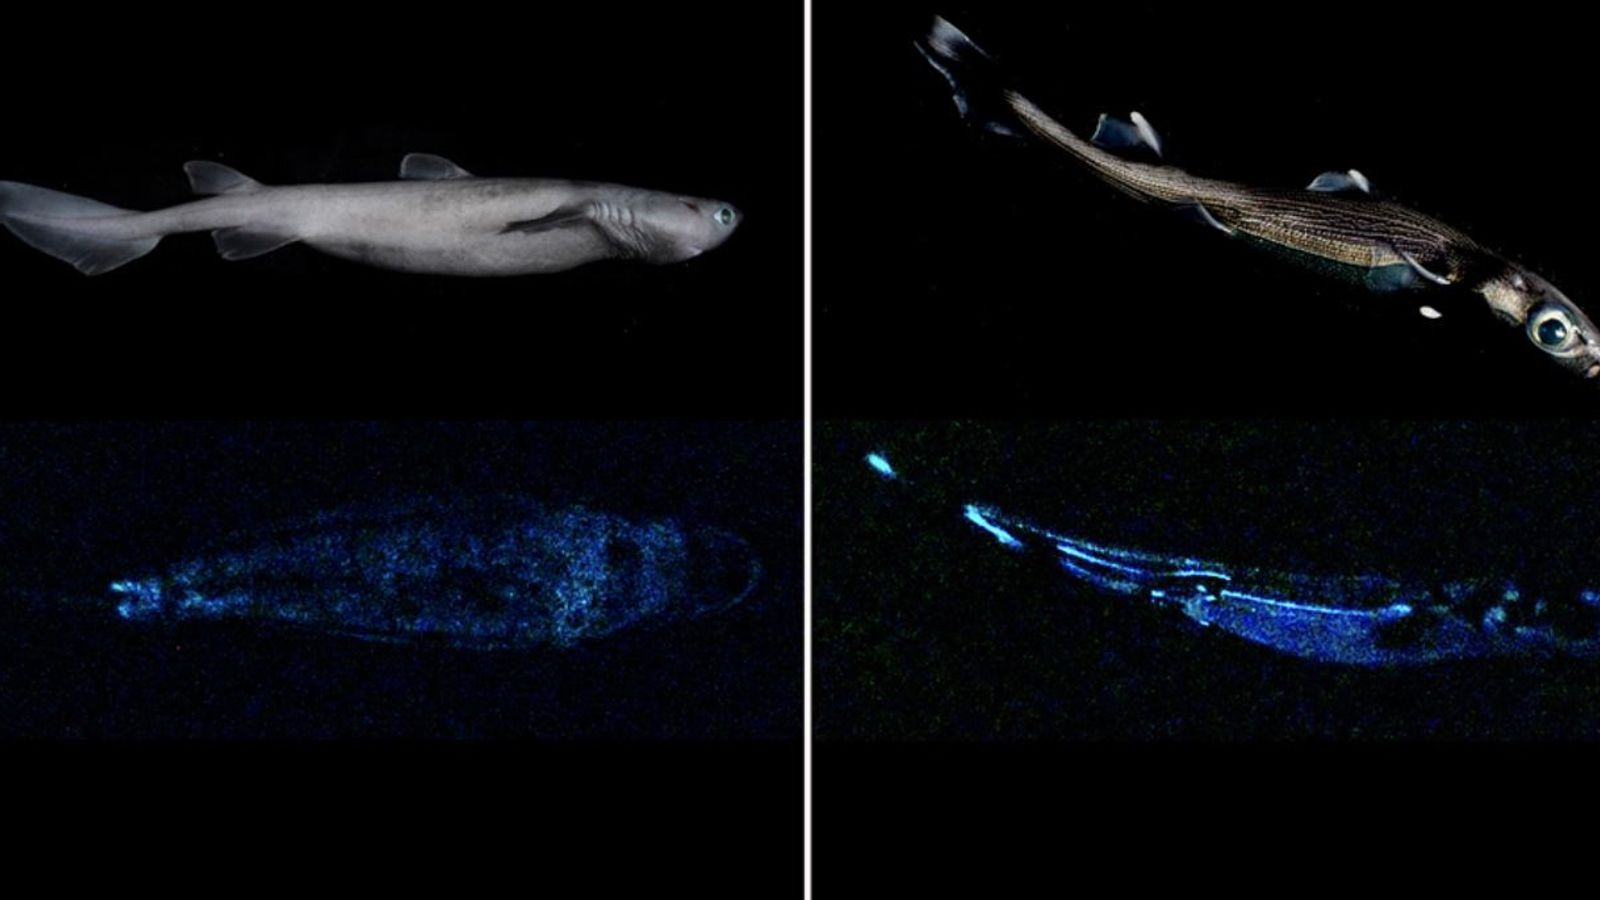 New research has confirmed three species of sharks found in New Zealand waters are bioluminescent, meaning they can produce their own light.